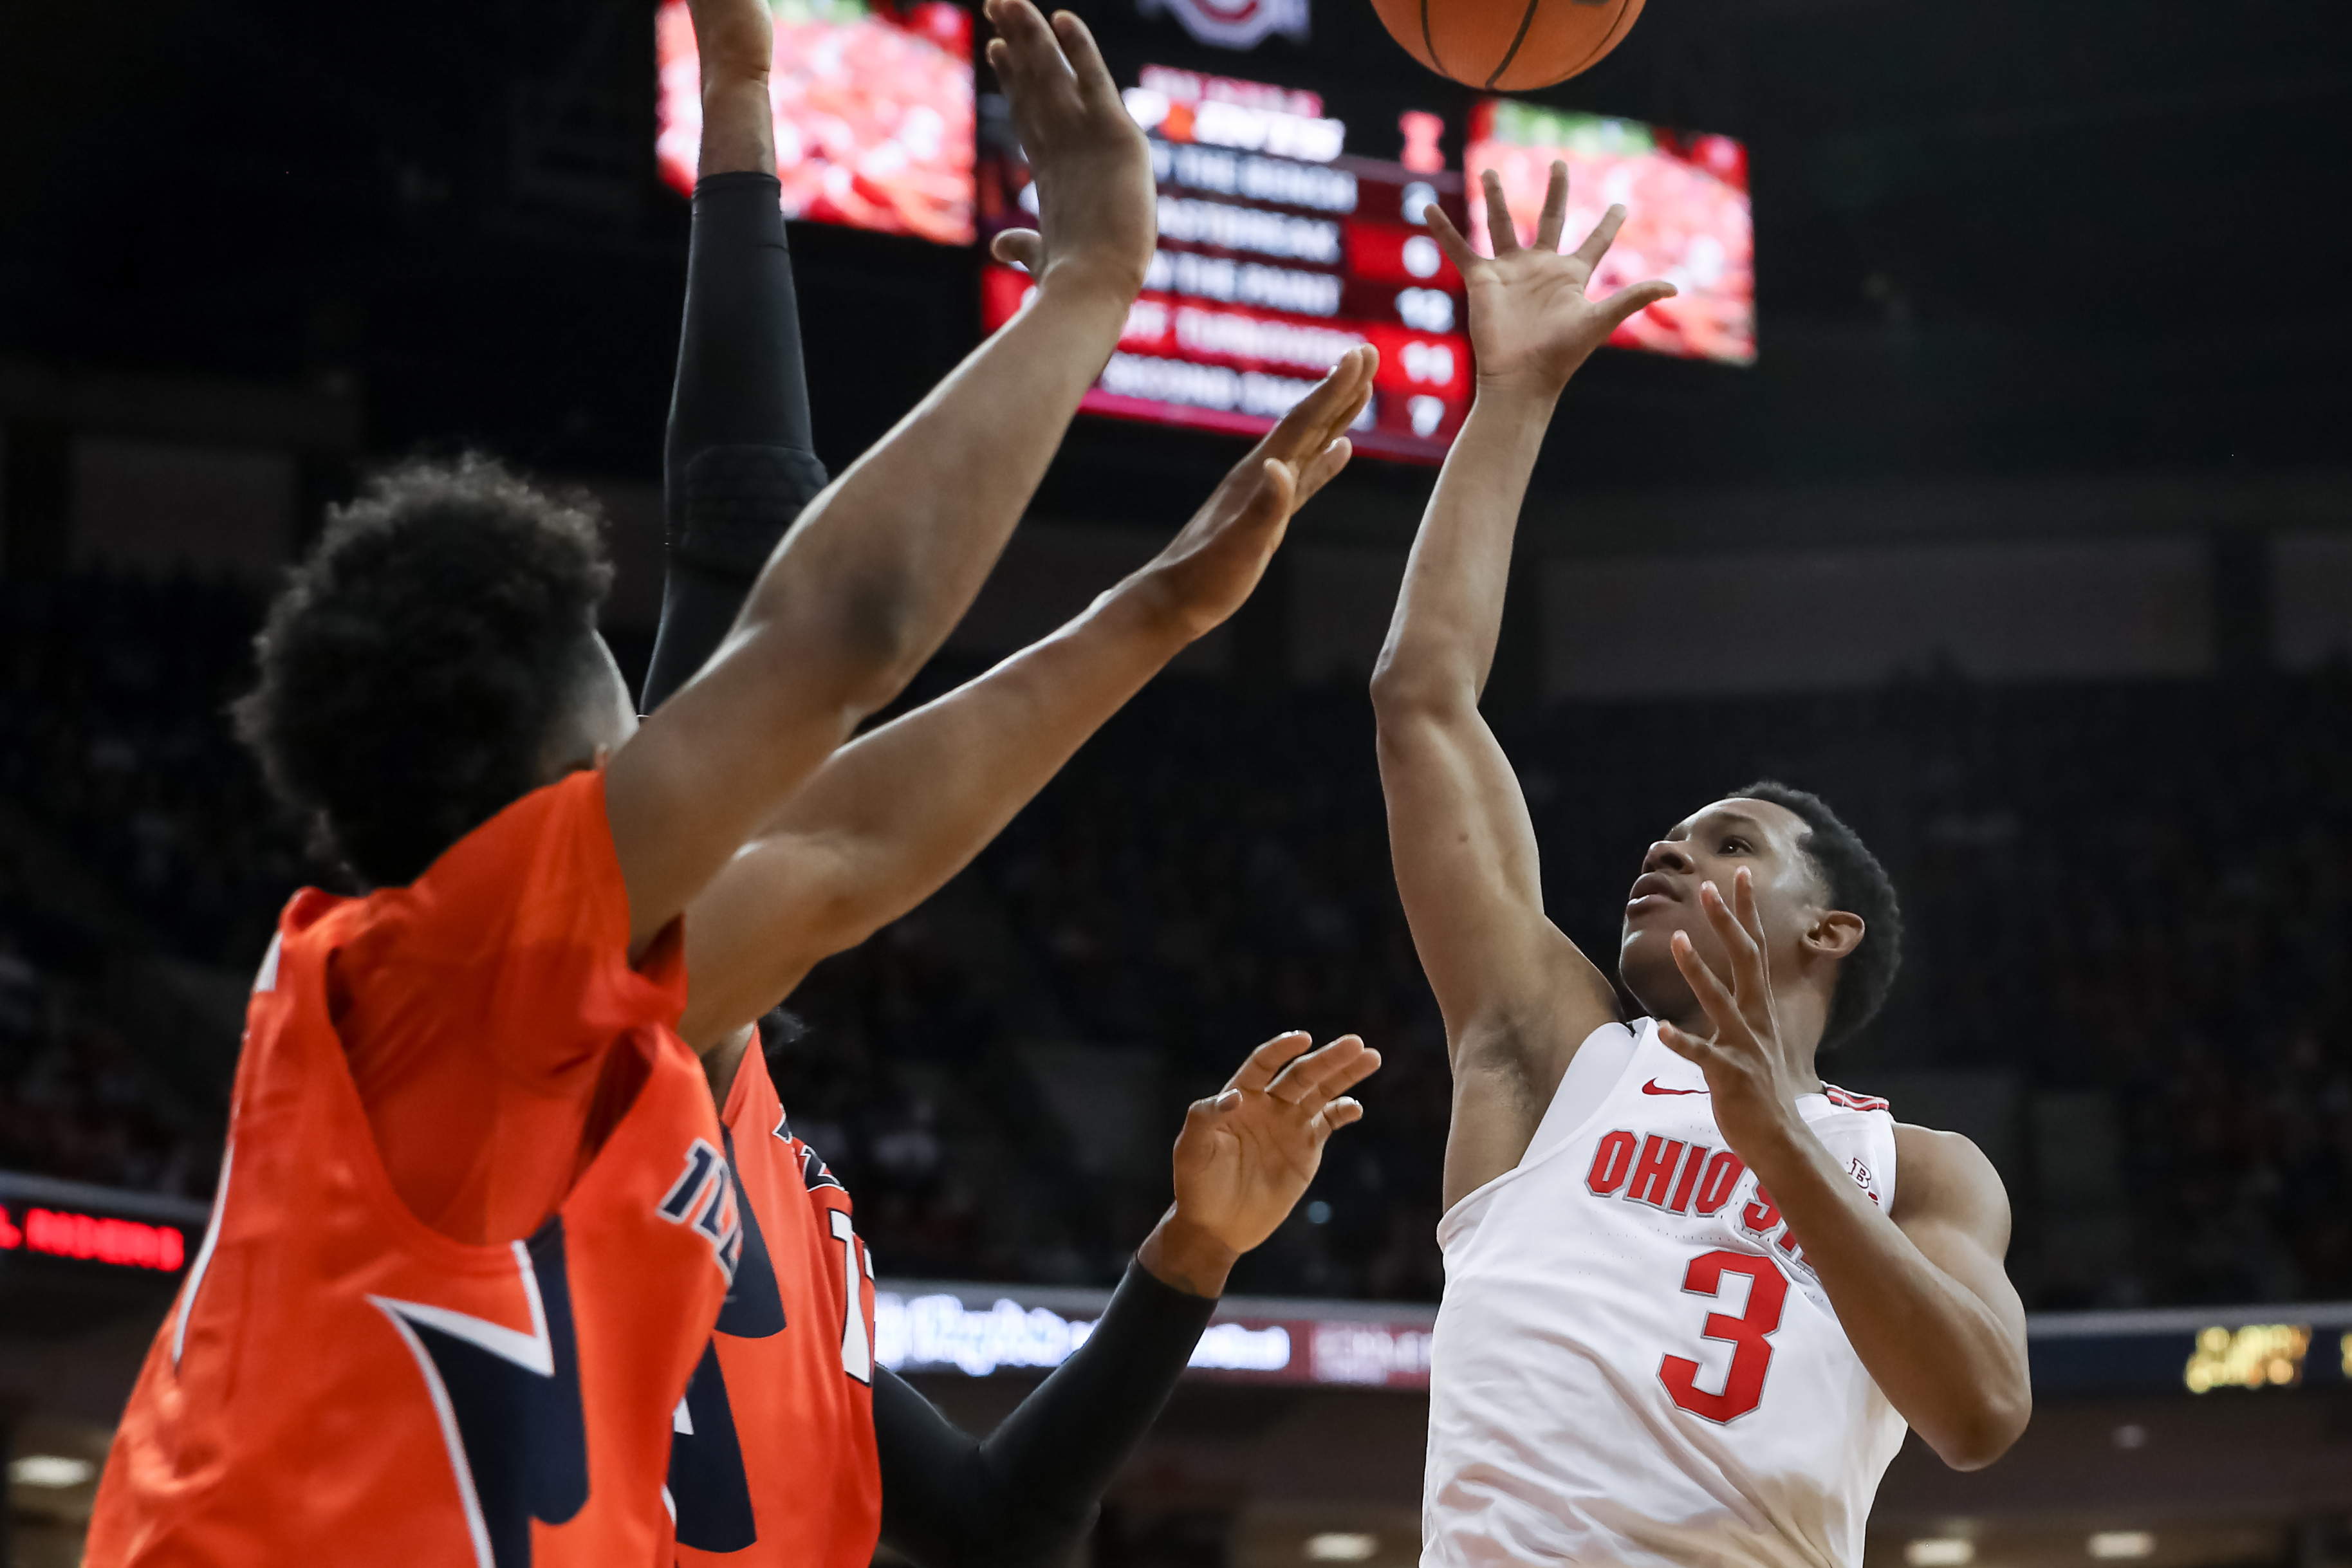 No. 1 Badgers lose to No. 6 Ohio State